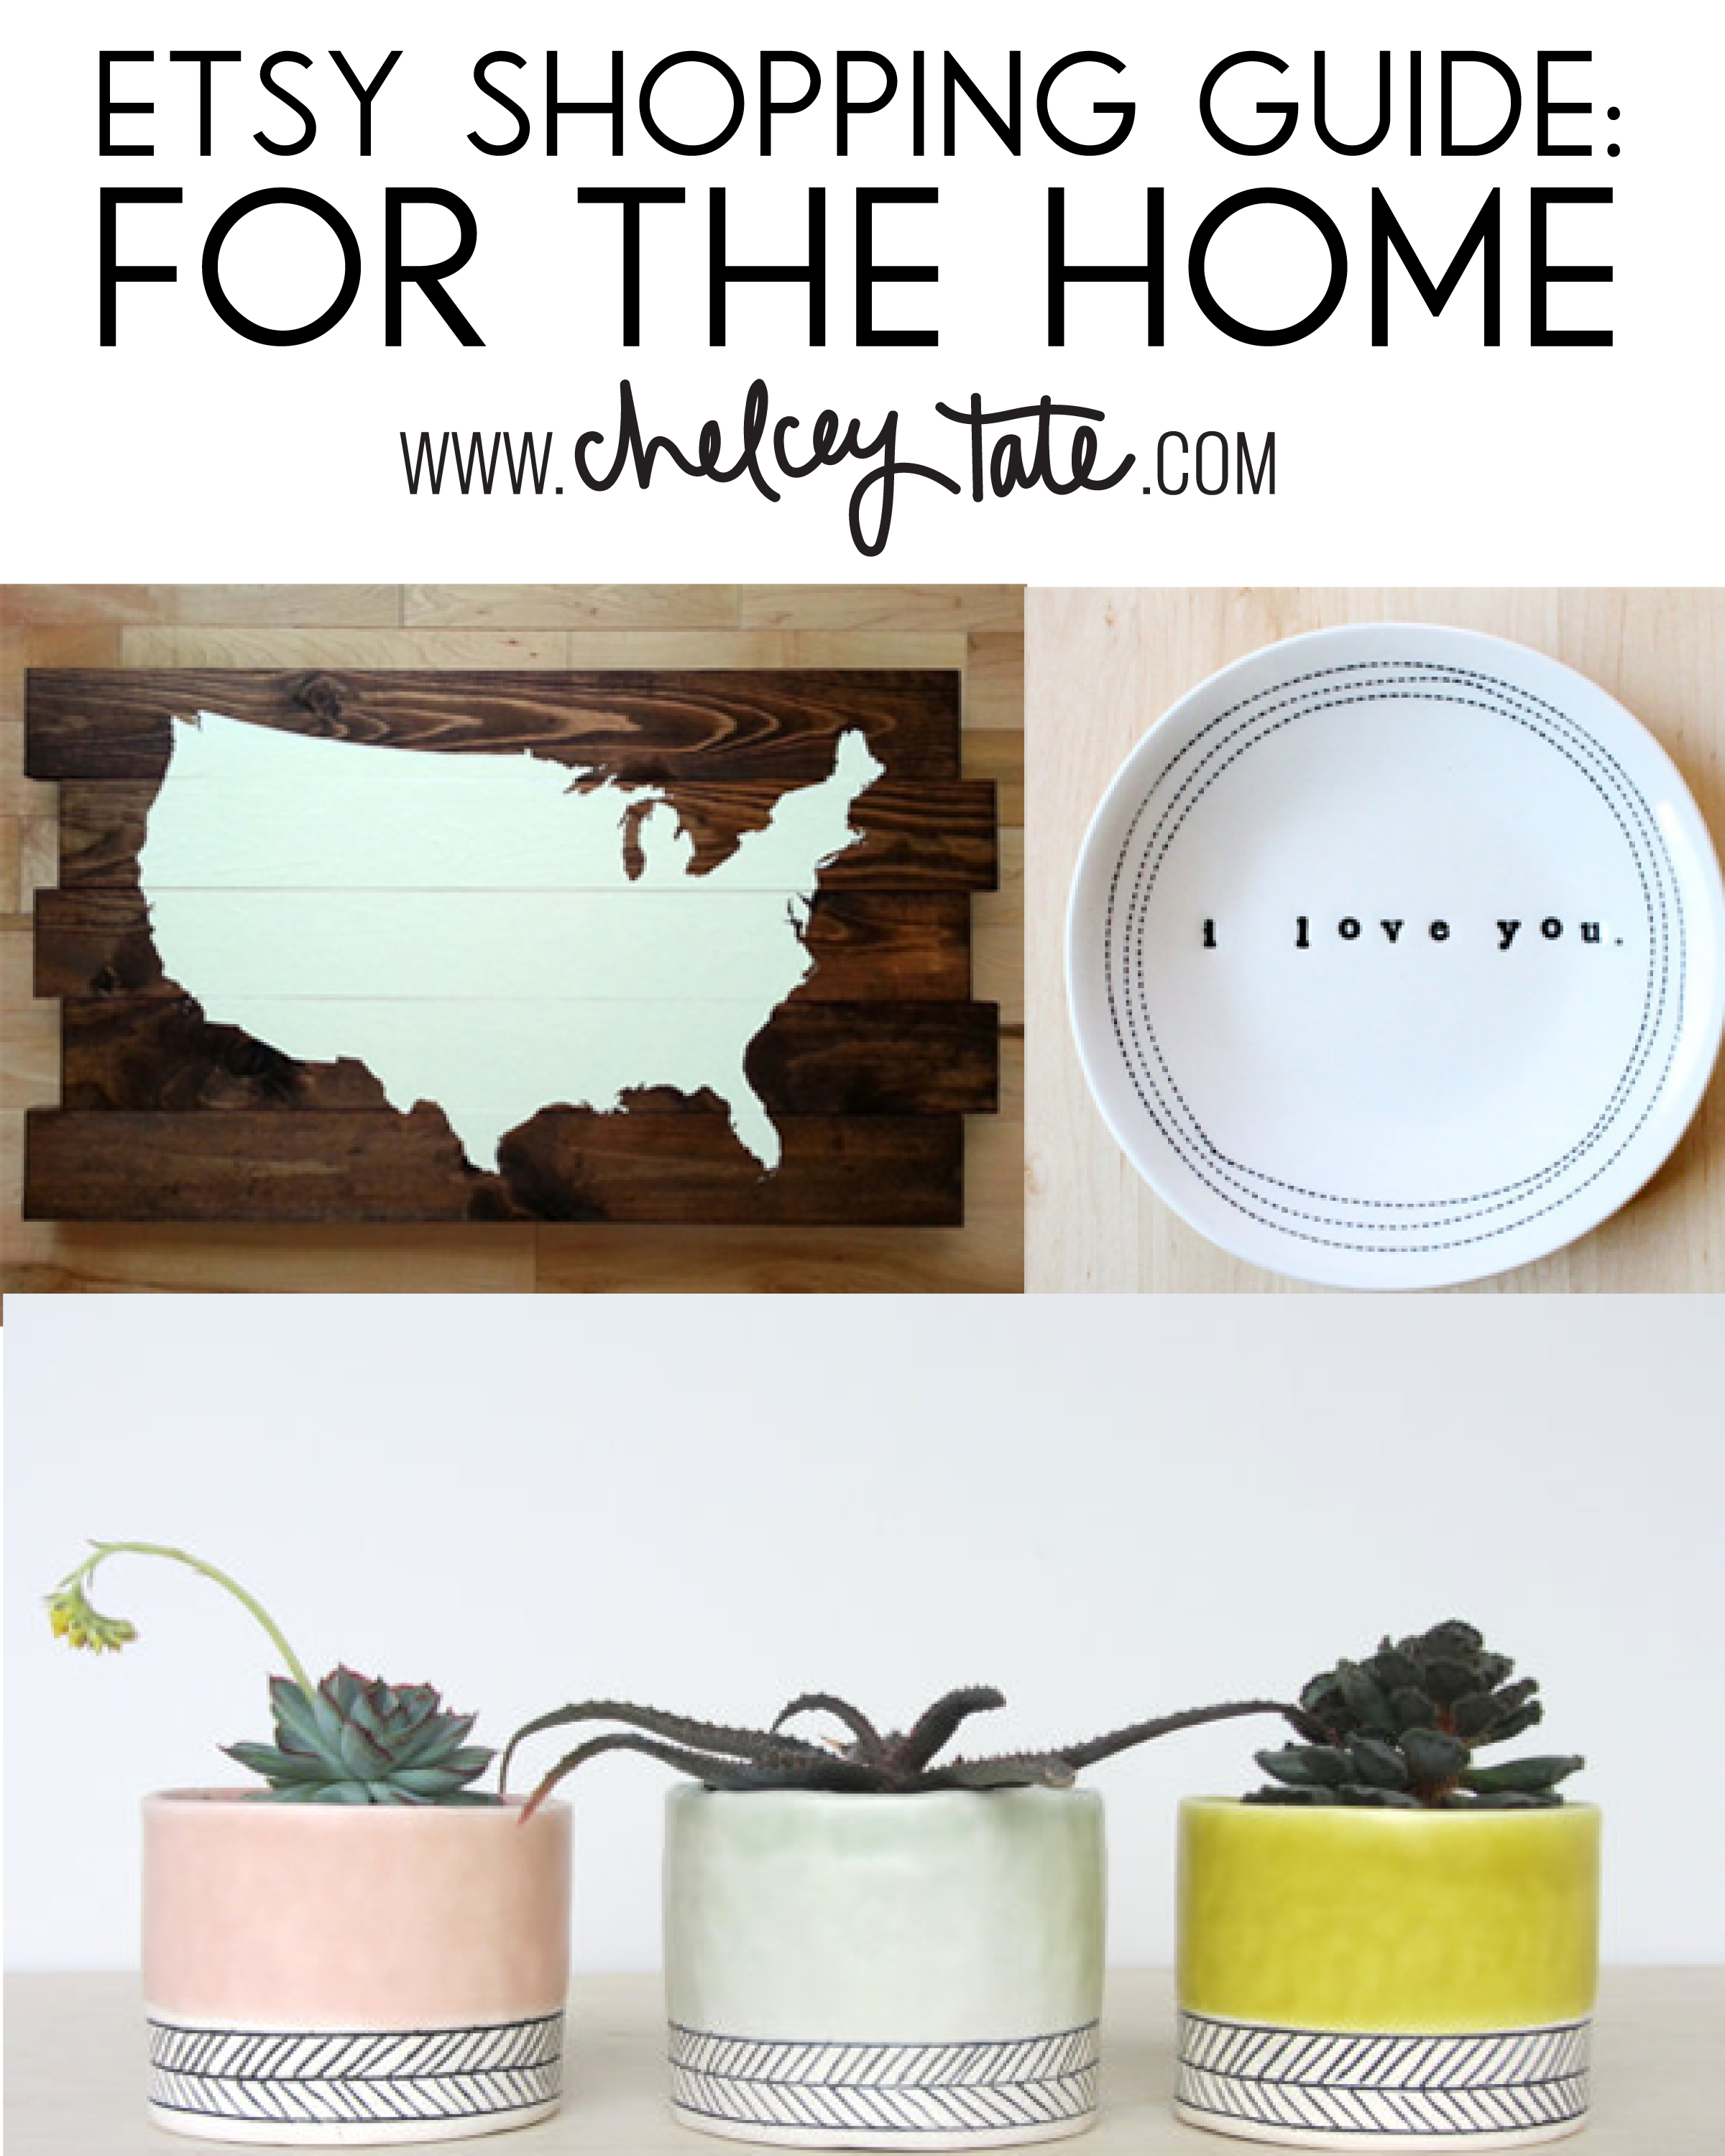 Etsy shopping guide for the home